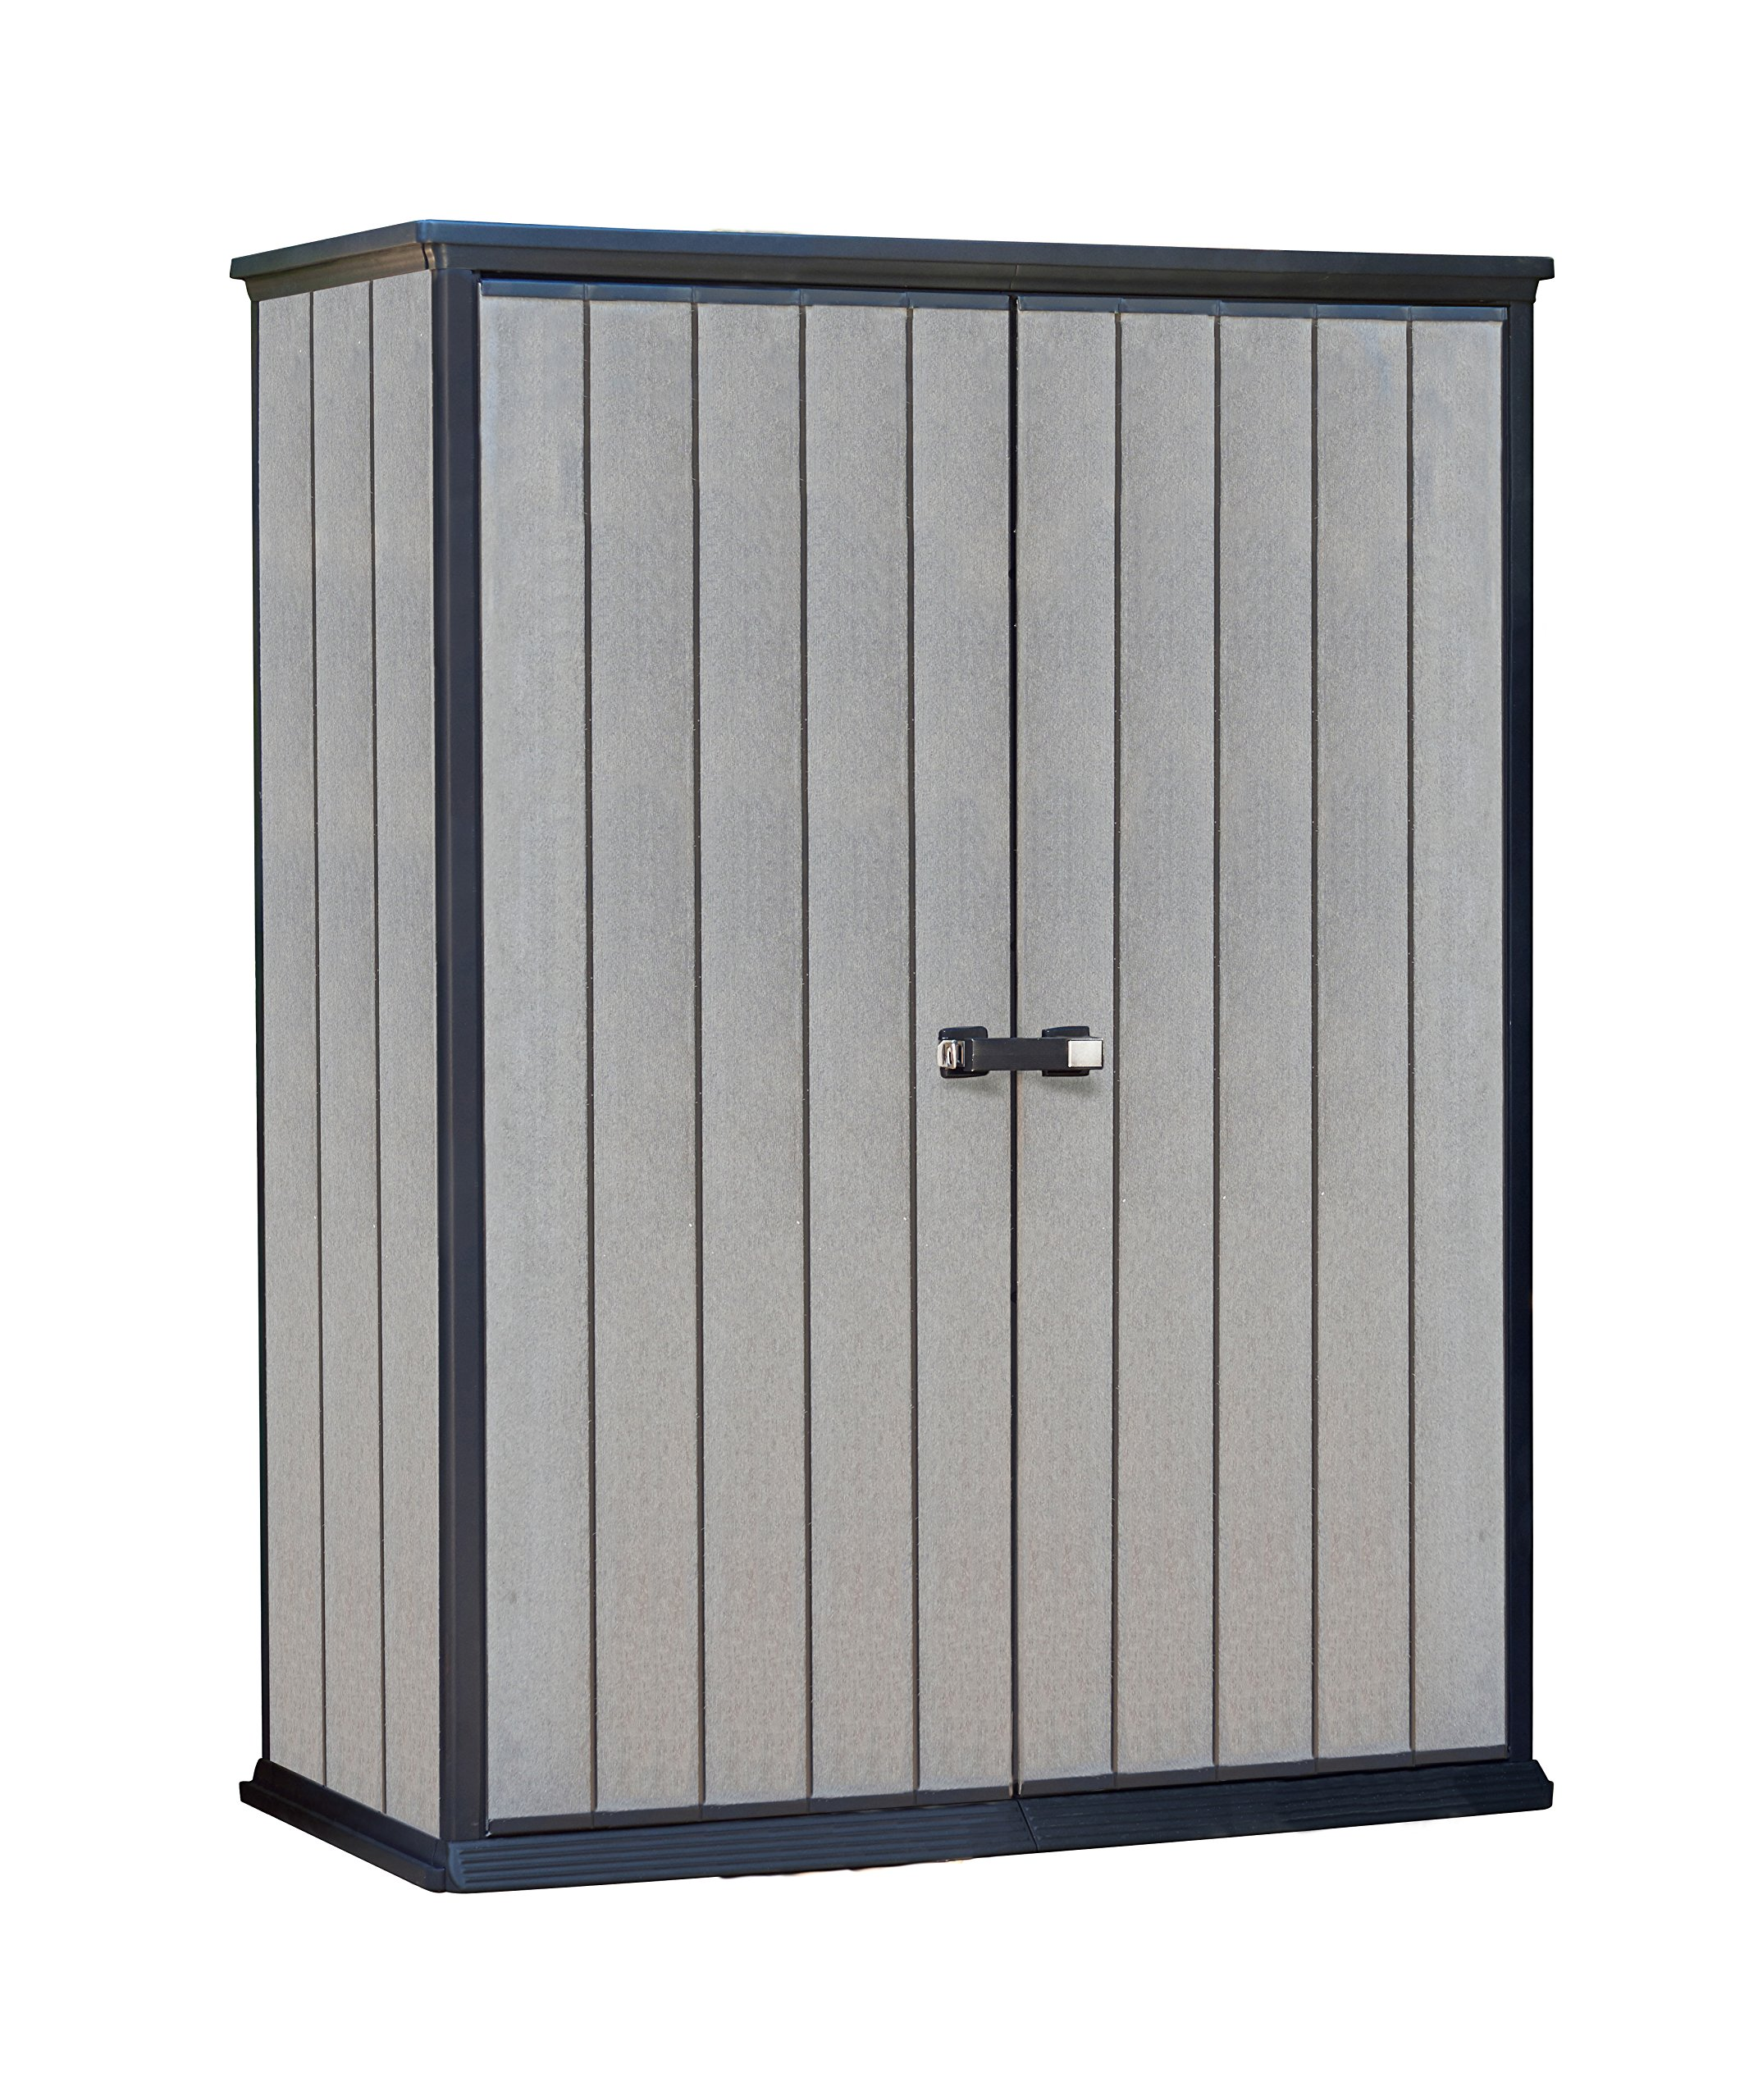 Keter High Store 4.5 x 2.5 Vertical Outdoor Resin Storage Shed, Grey by Keter (Image #1)